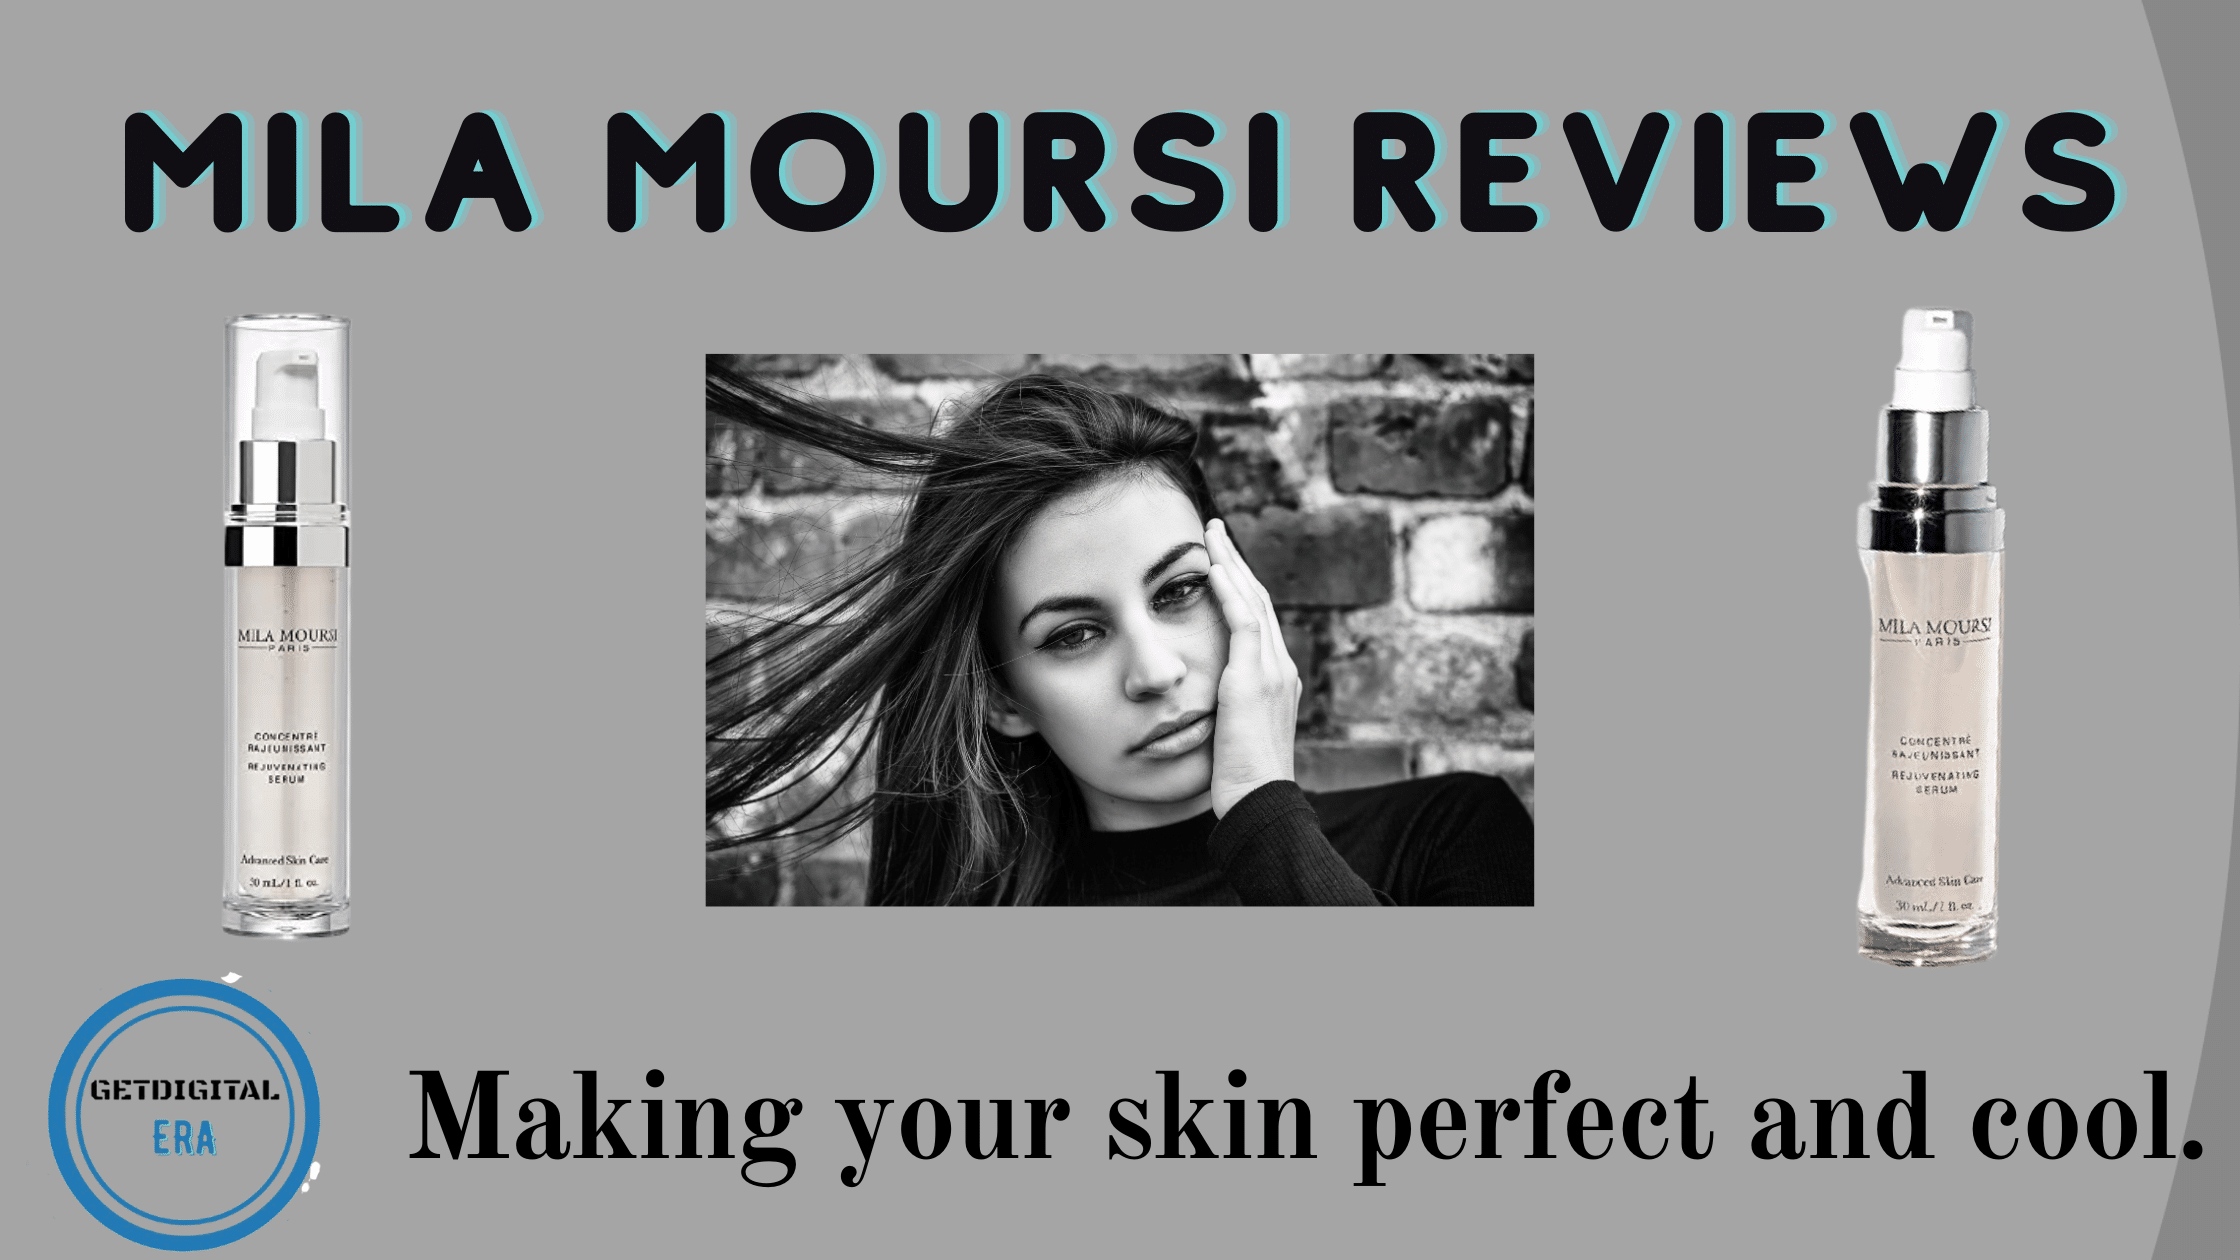 Mila Moursi Reviews